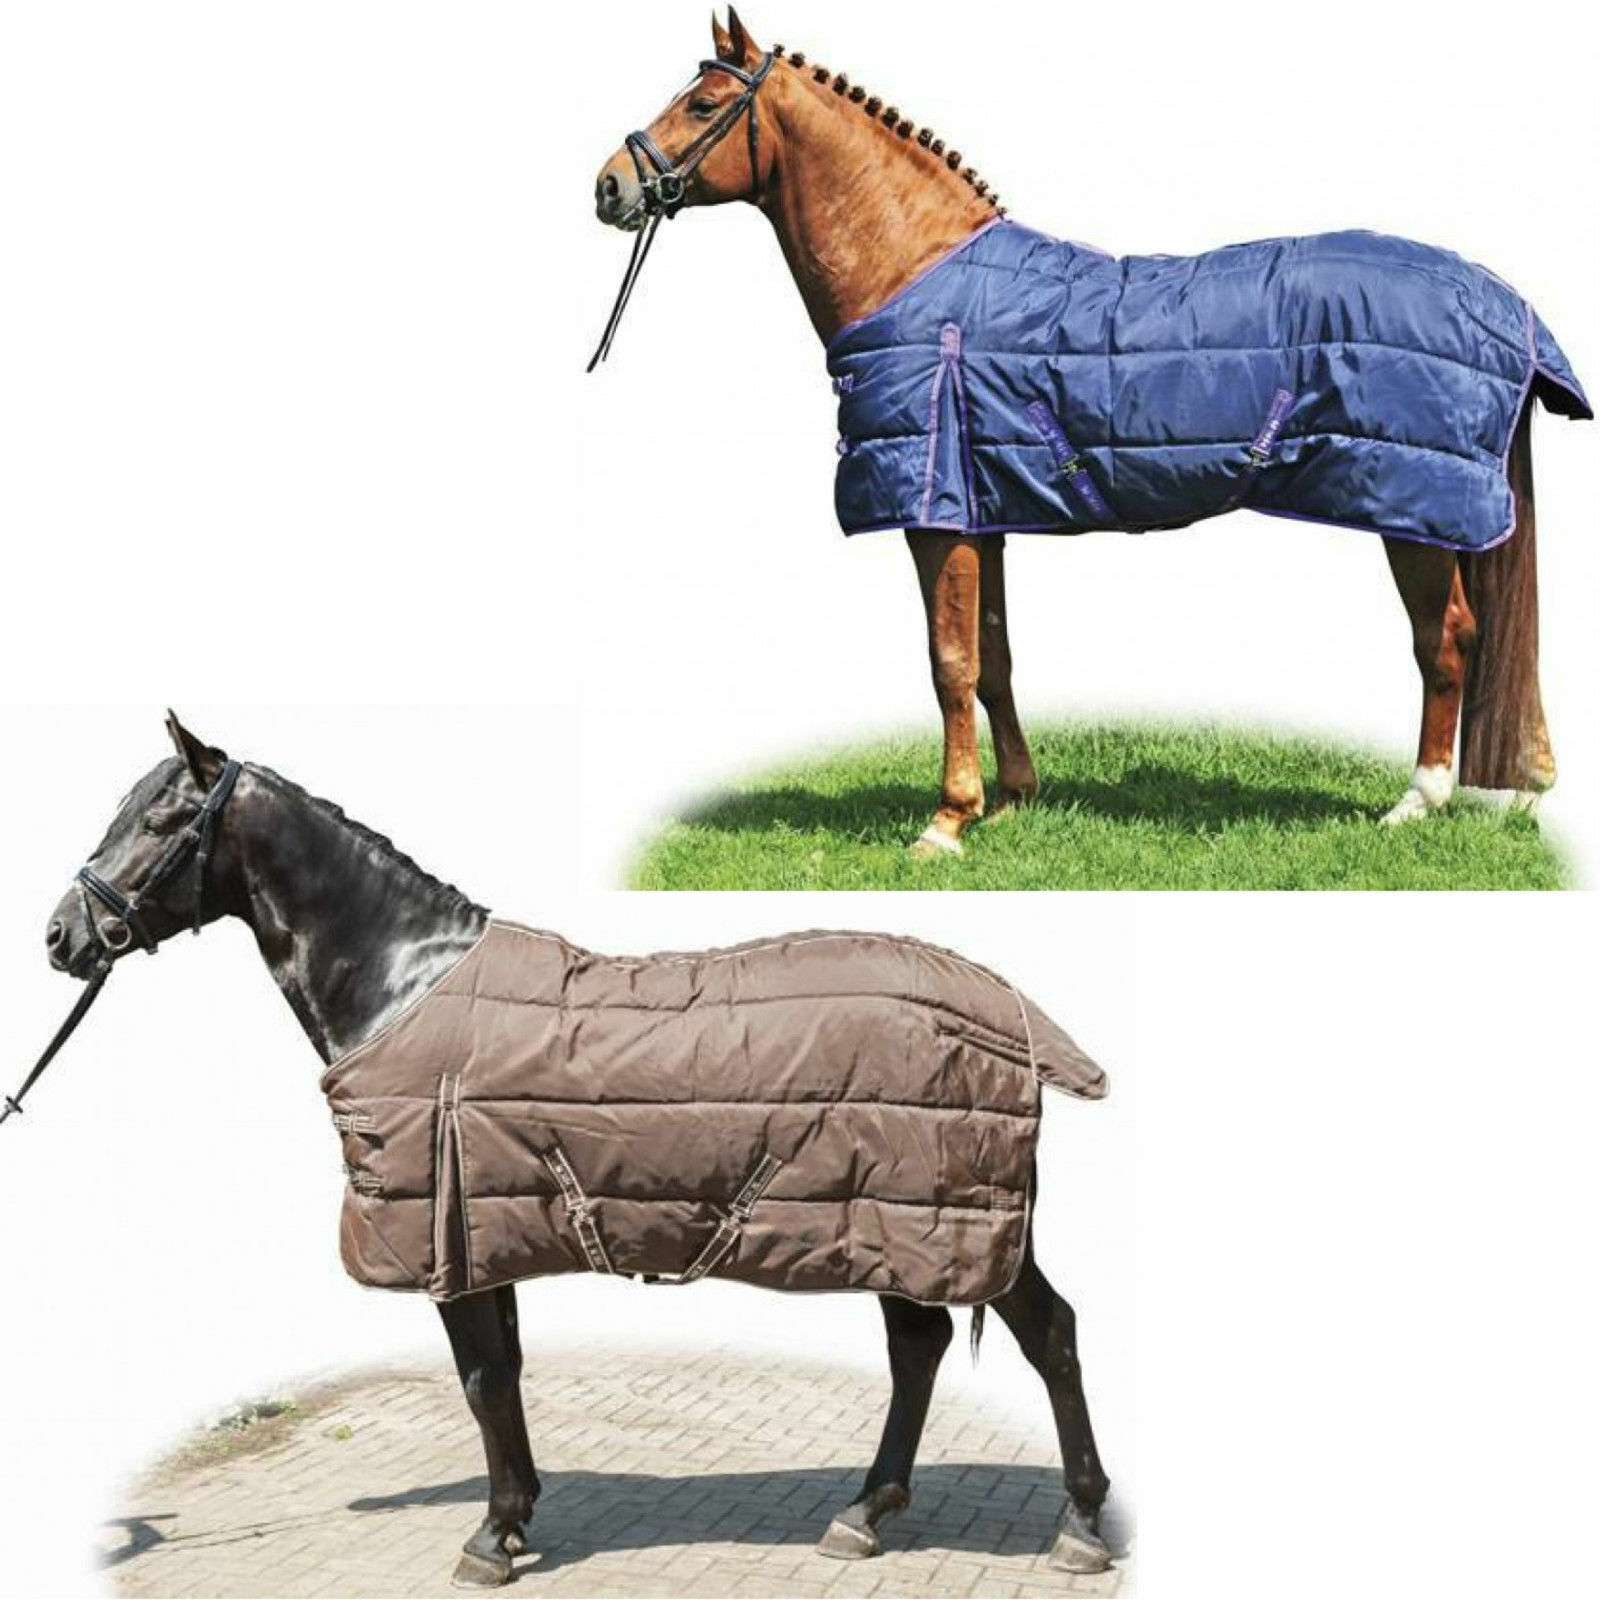 HKM Winter  Stable Blanket 1200D with gehfalte  considerate service